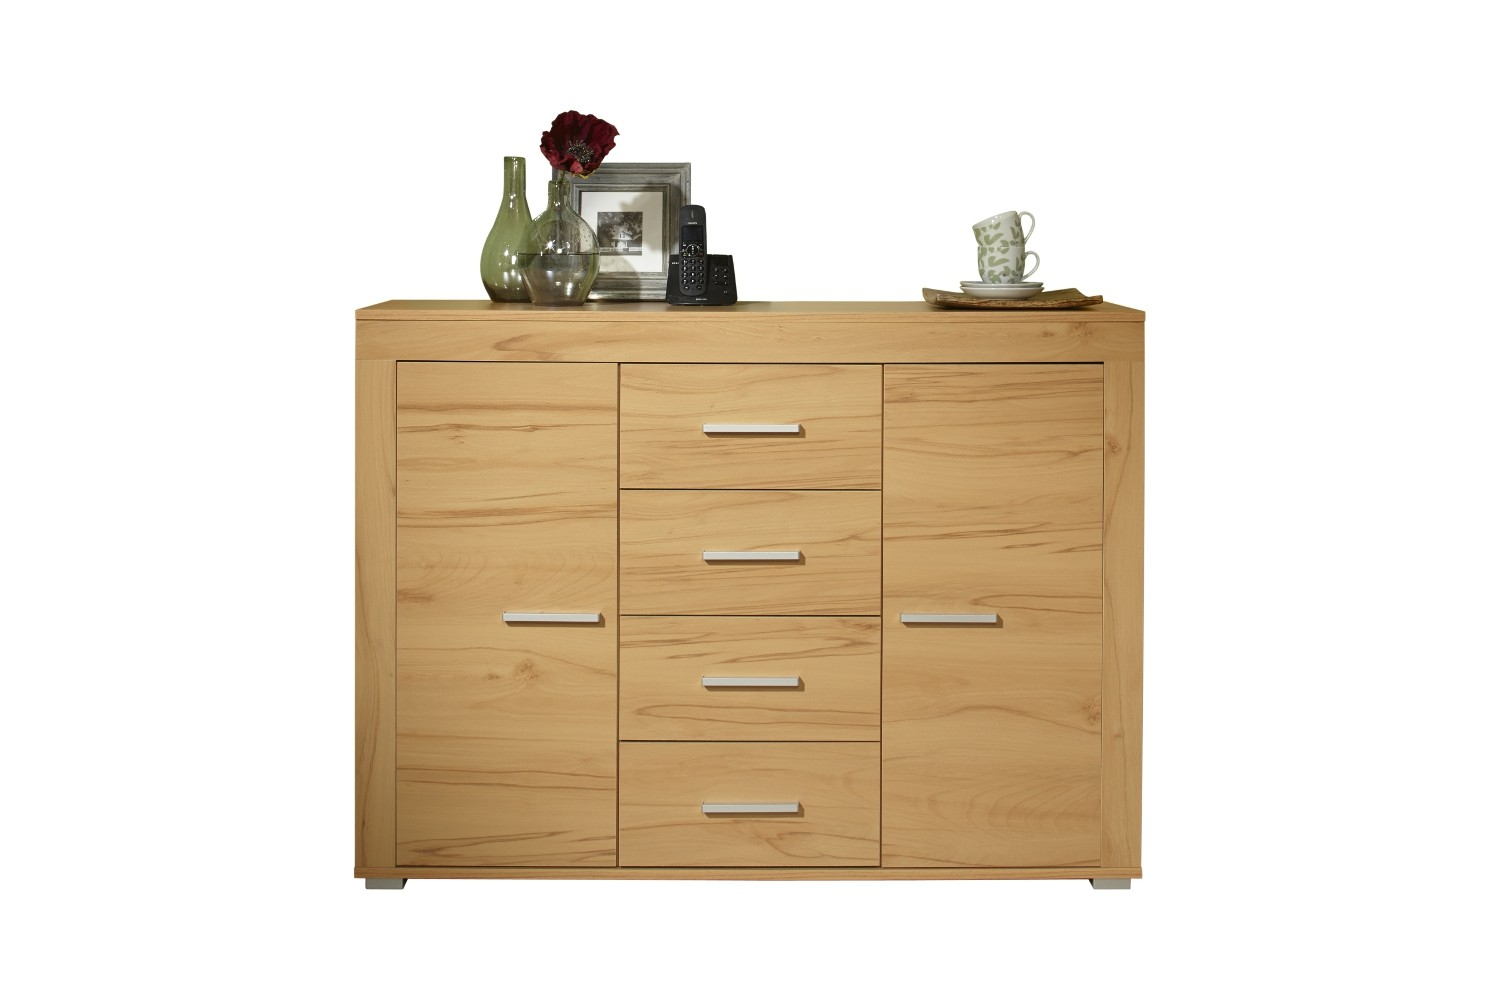 sideboard aosta 120 cm breit 2 t ren 4 schubladen kernbuche wohnen aosta. Black Bedroom Furniture Sets. Home Design Ideas